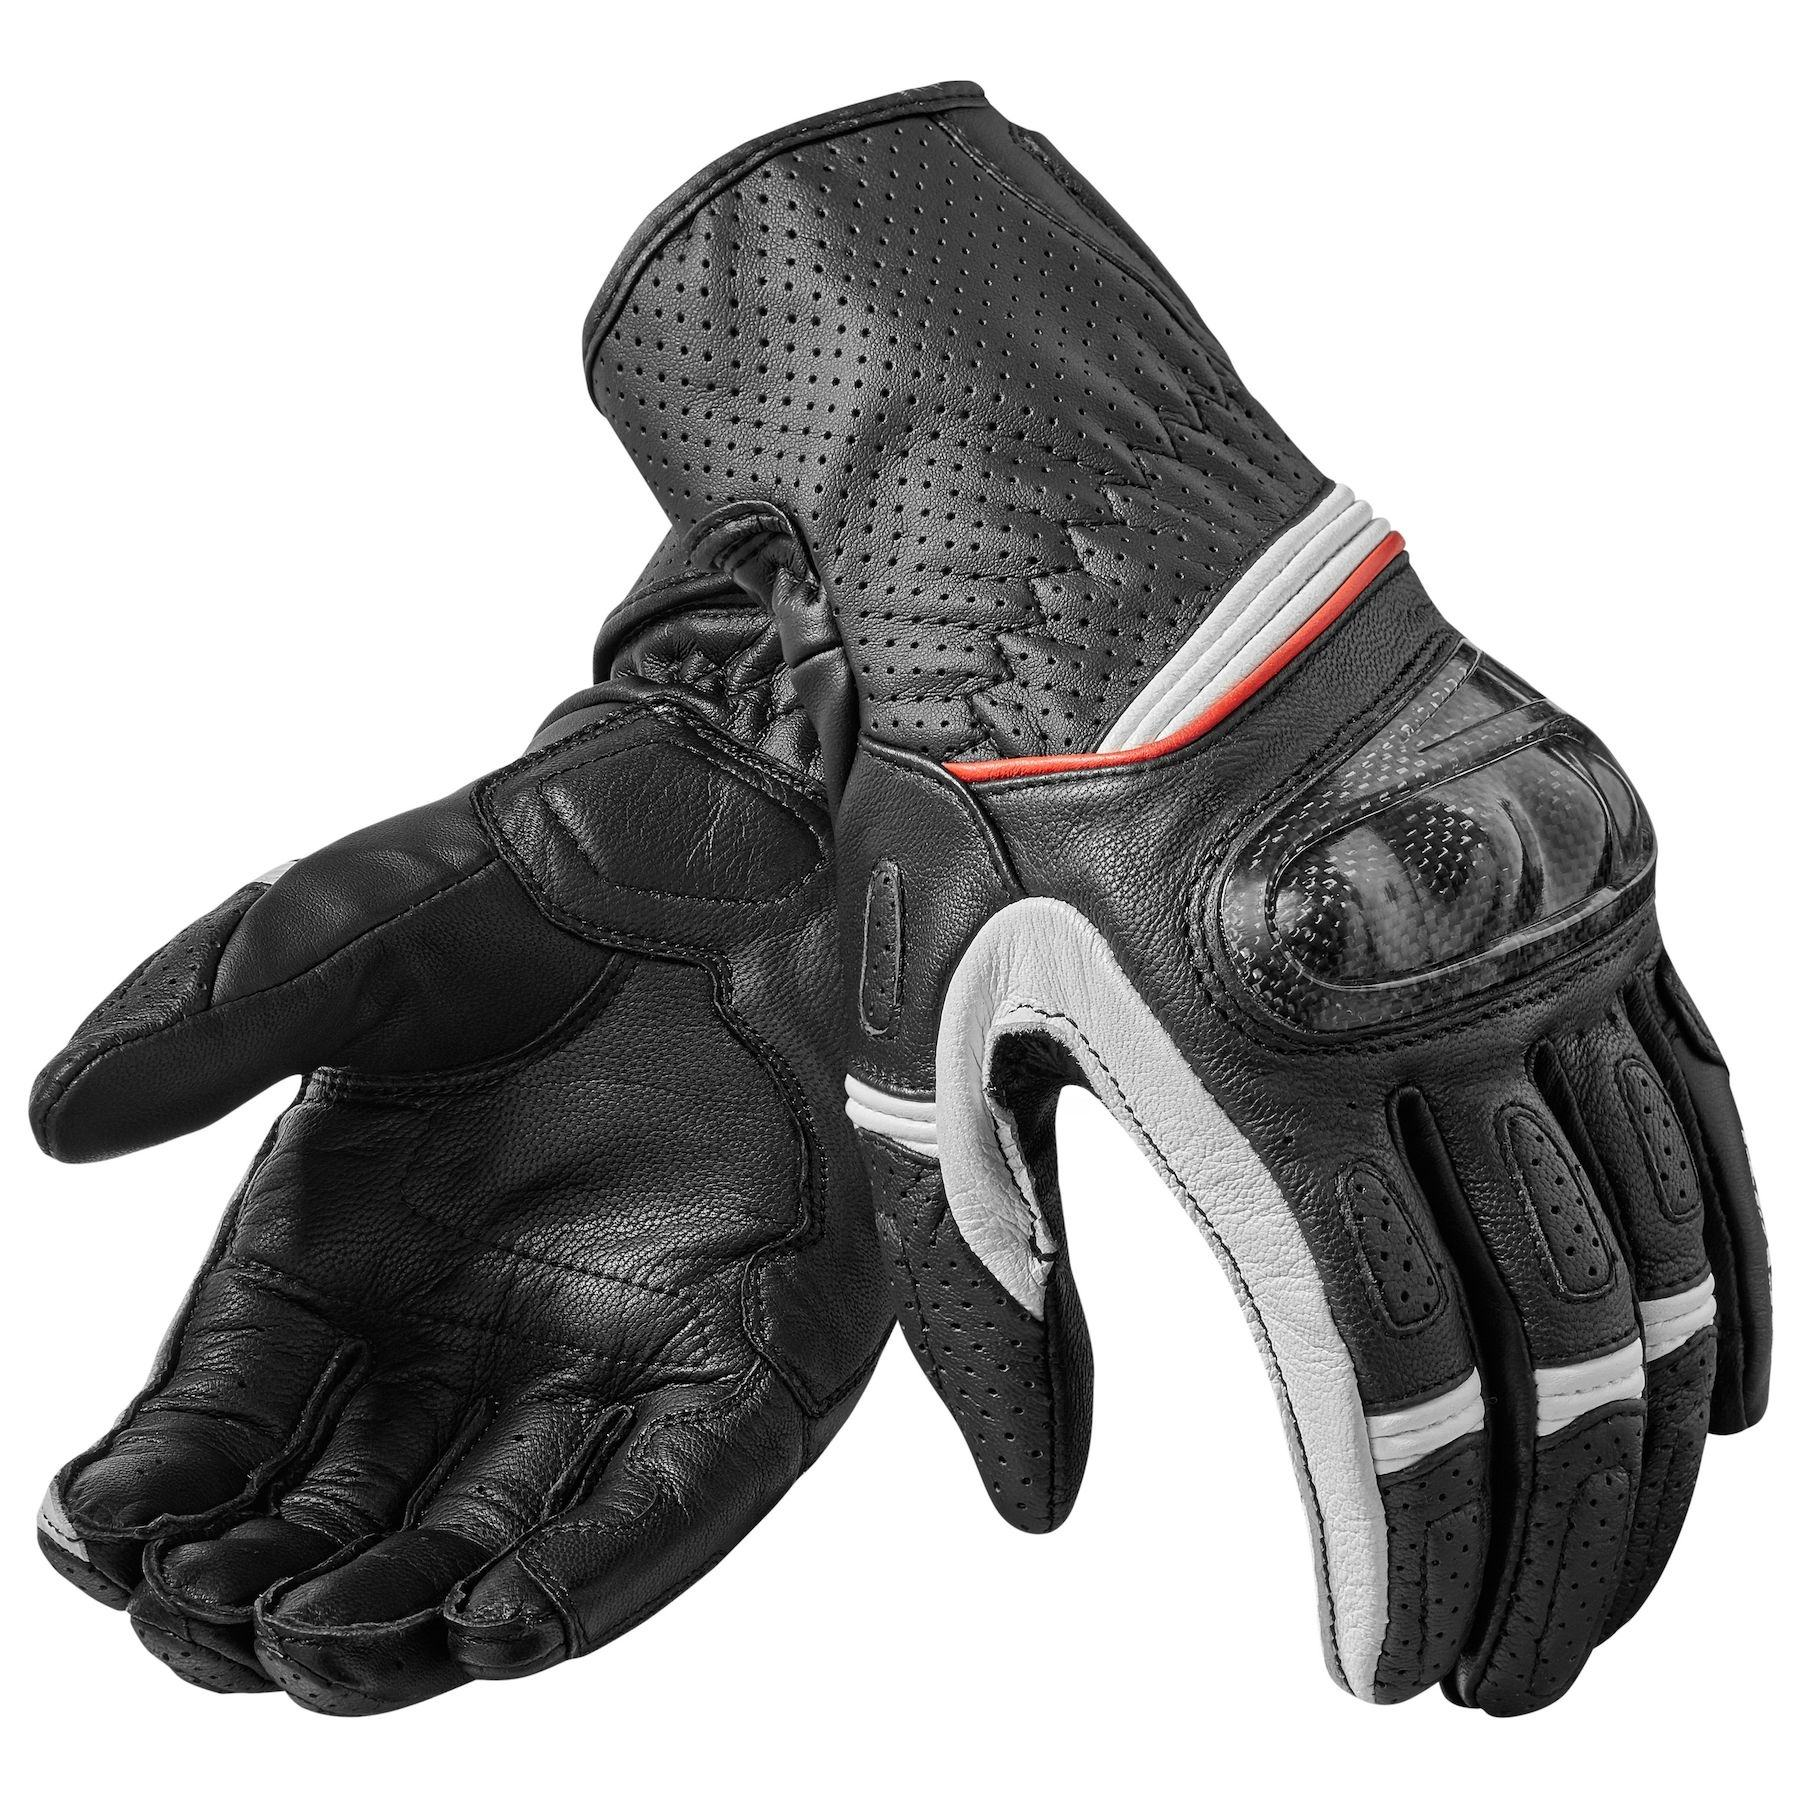 Race Fit Summer Motorbike Glove